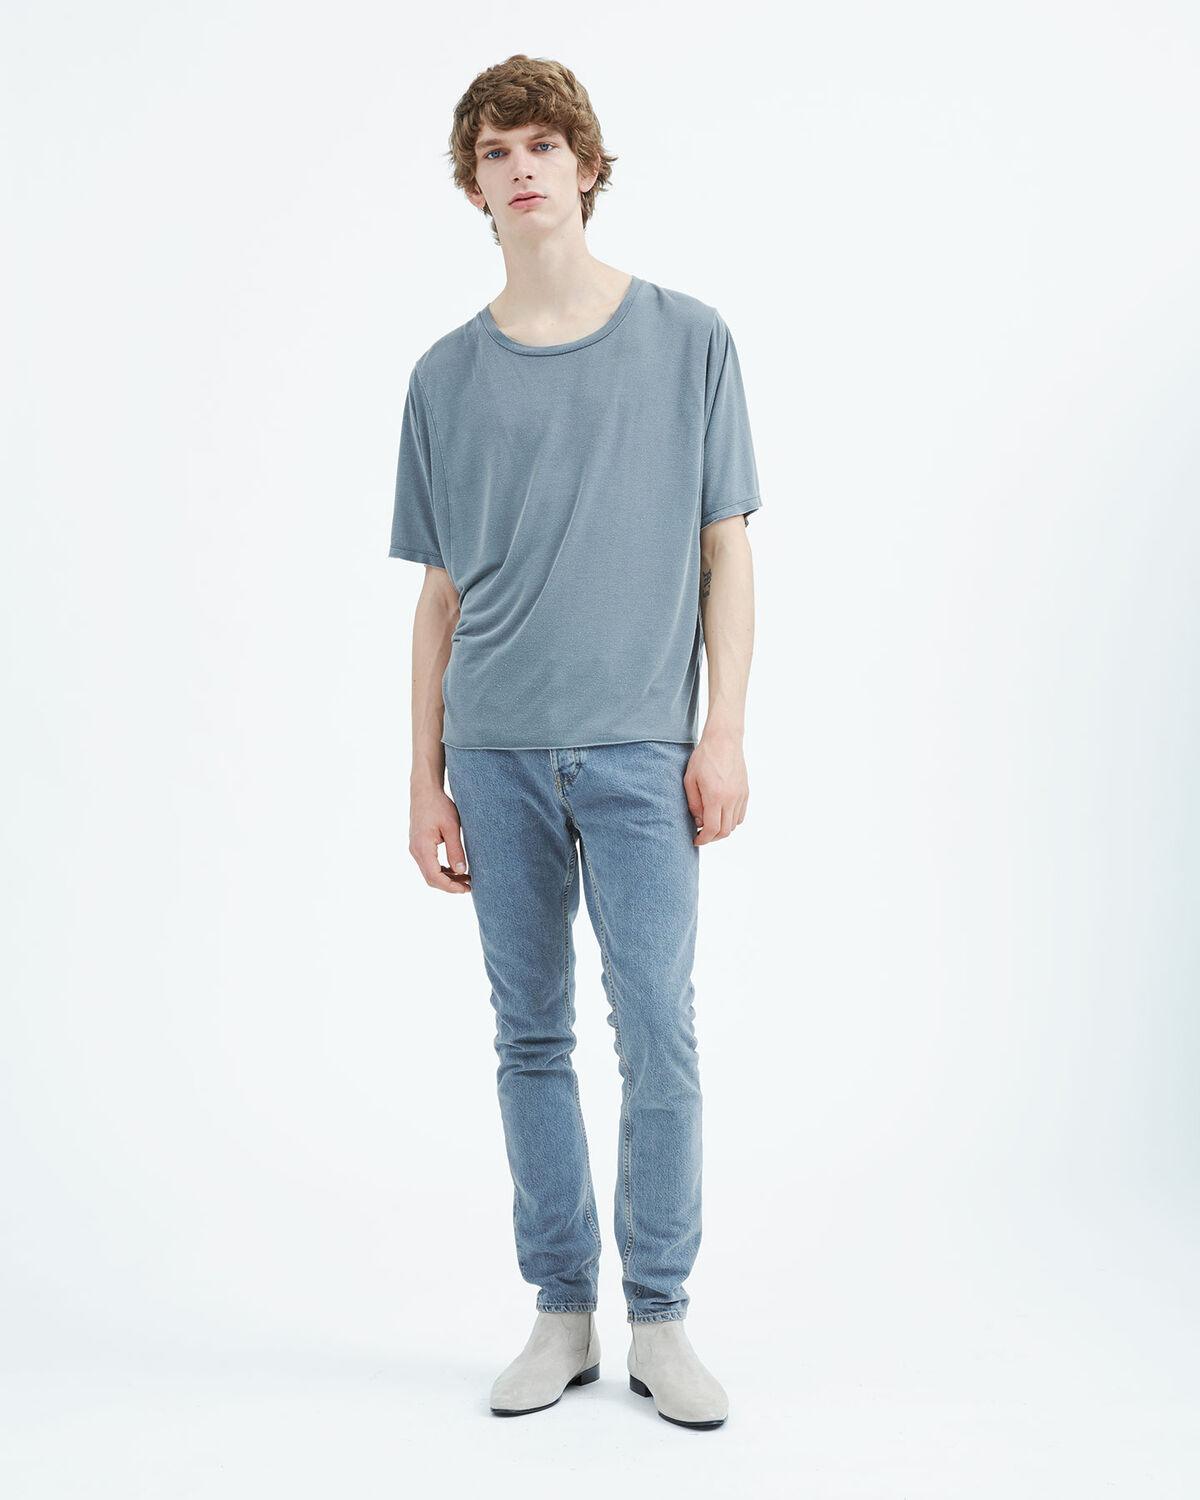 IRO - MUTIS T-SHIRT BLUE GREY